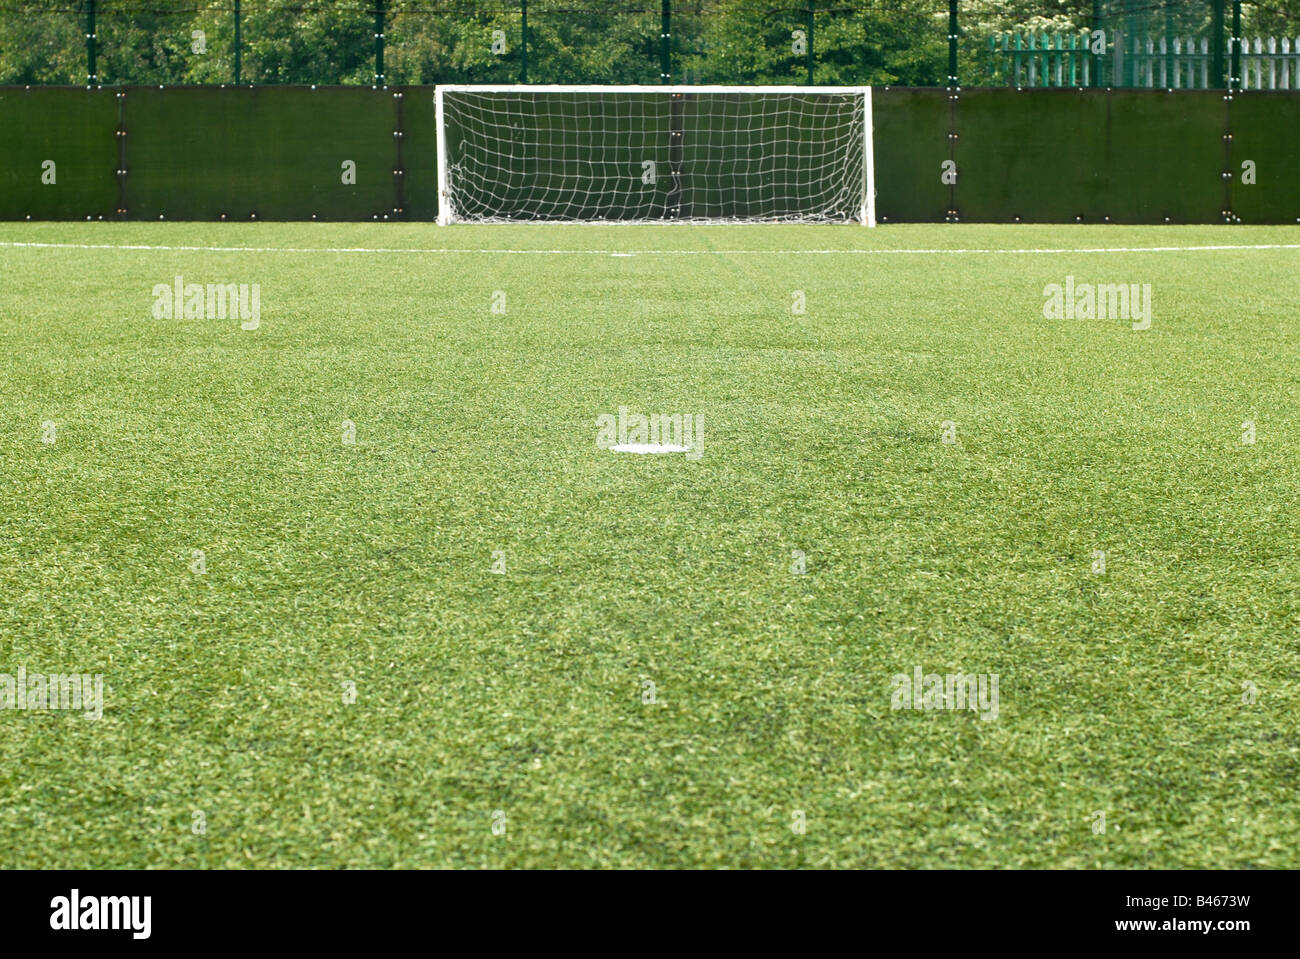 Penalty spot, Astro Turf Football Pitch - Stock Image